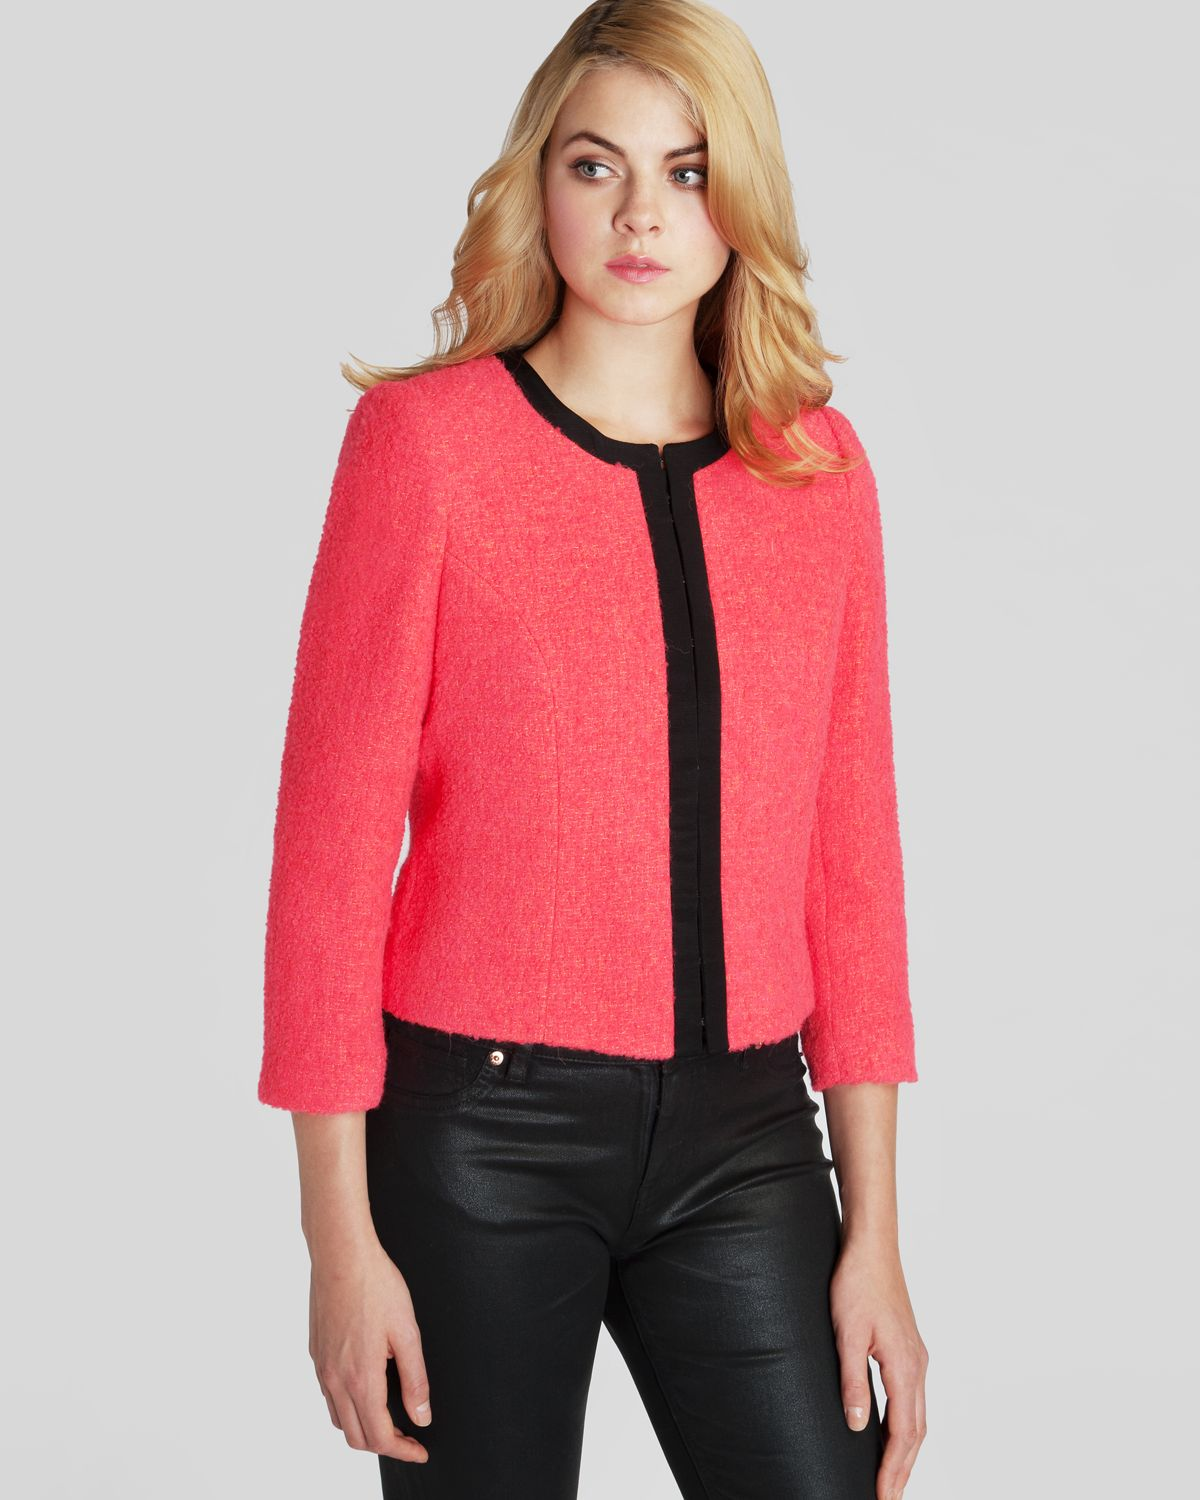 495d05a9f8d021 Lyst - Ted Baker Jacket Kerisa Cropped Neon in Red